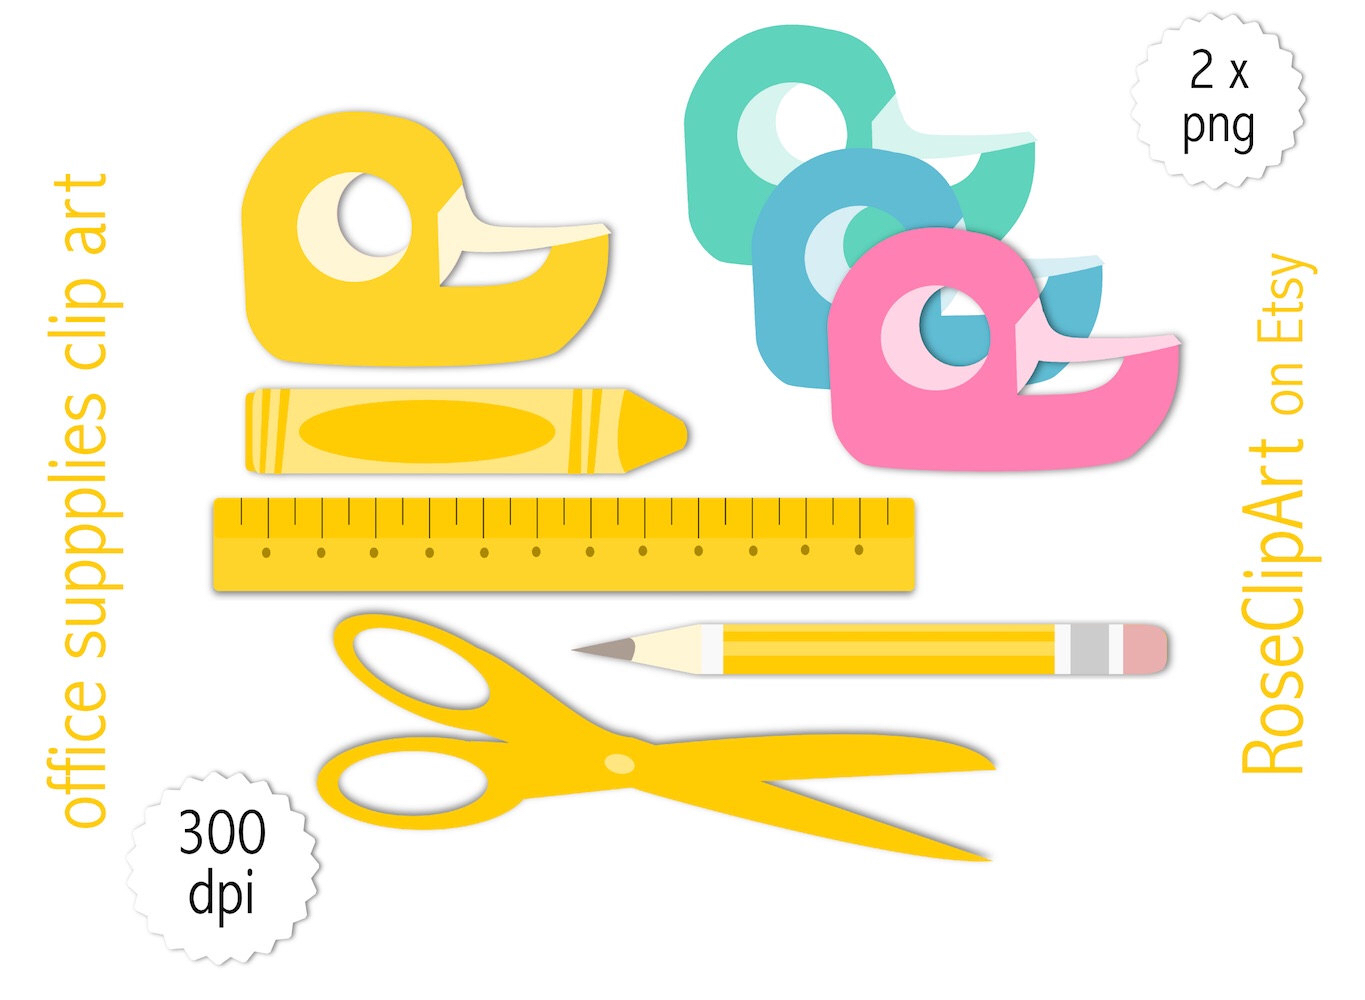 Crayon clipart scissors Crafting pencil use download